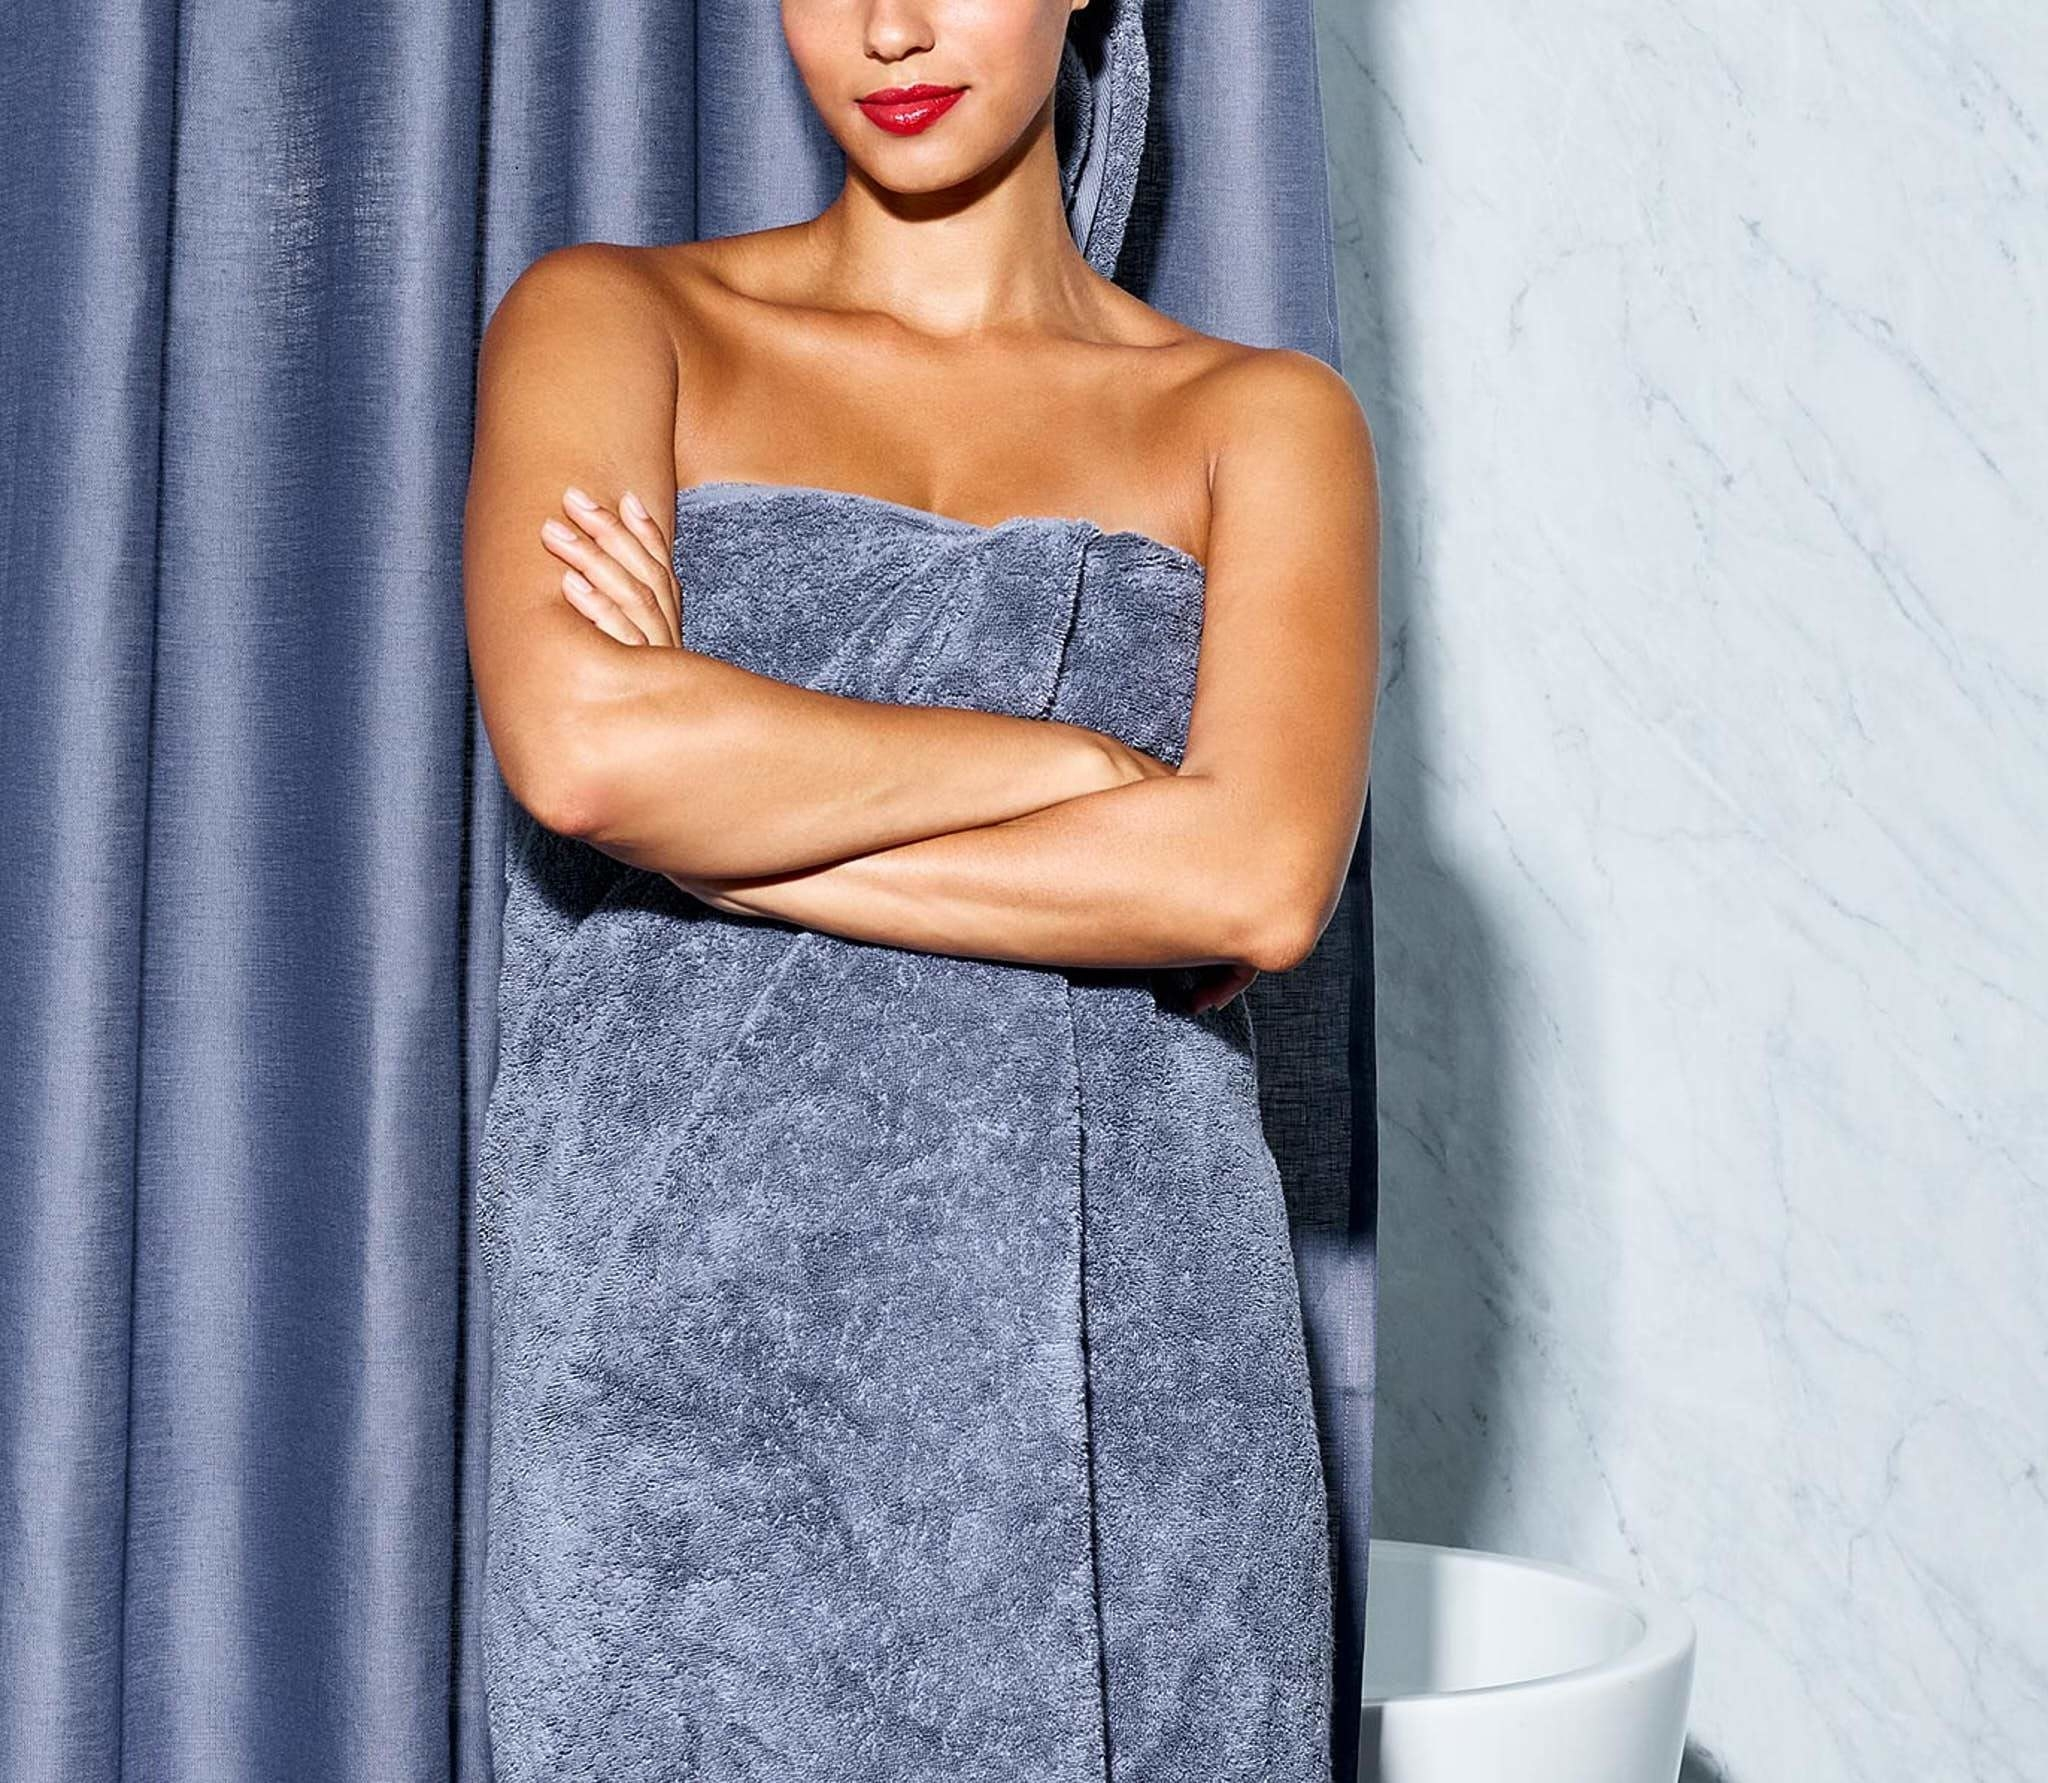 model wrapped in blue towel